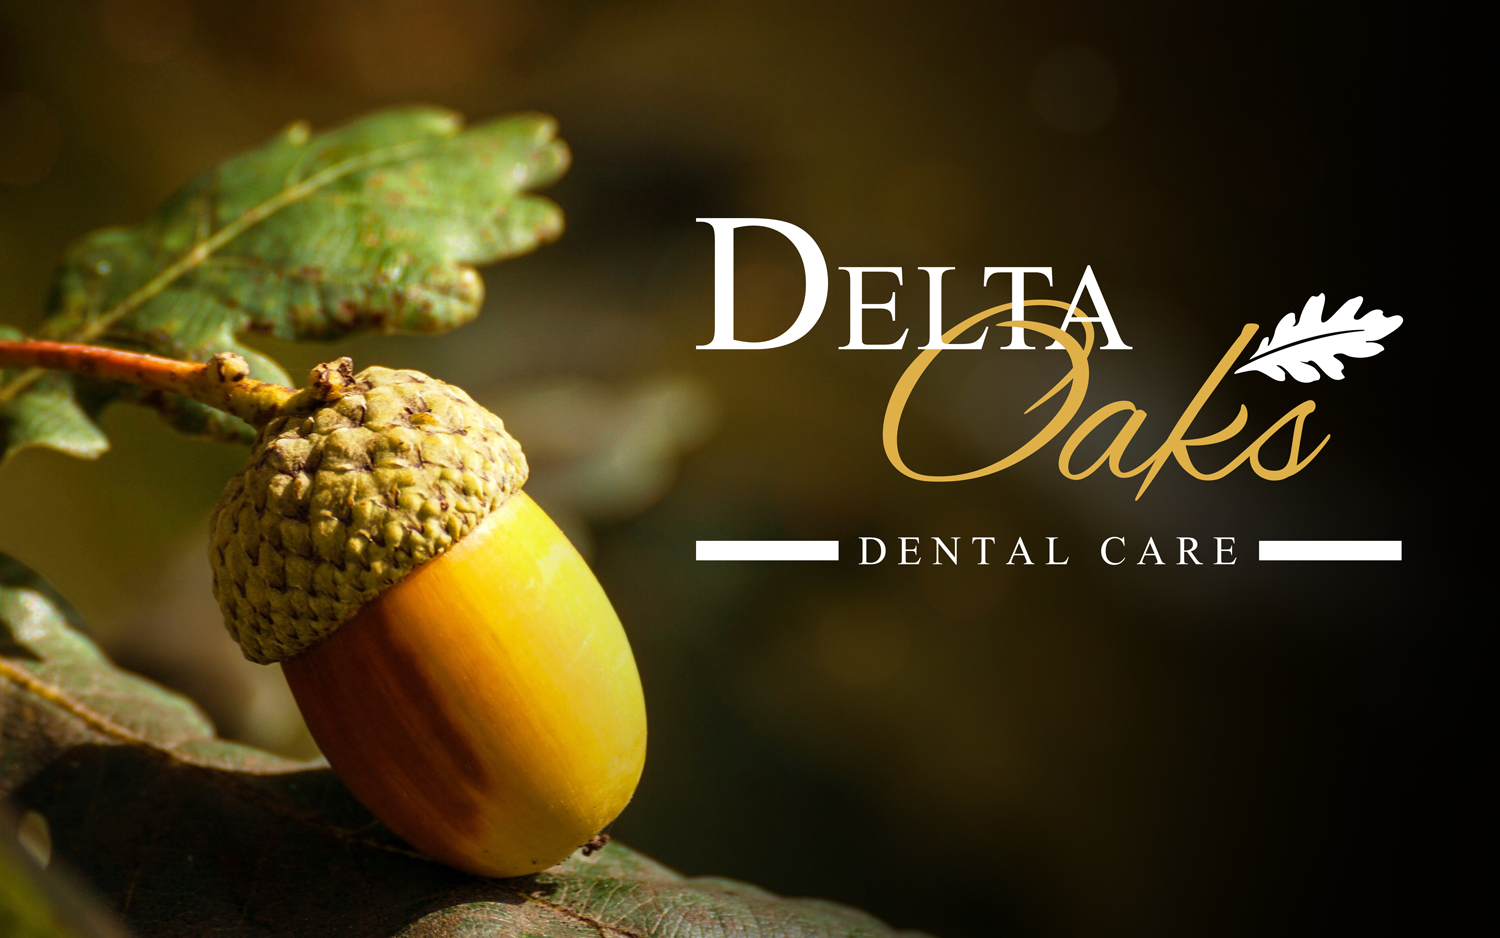 Delta Oaks Dental Care